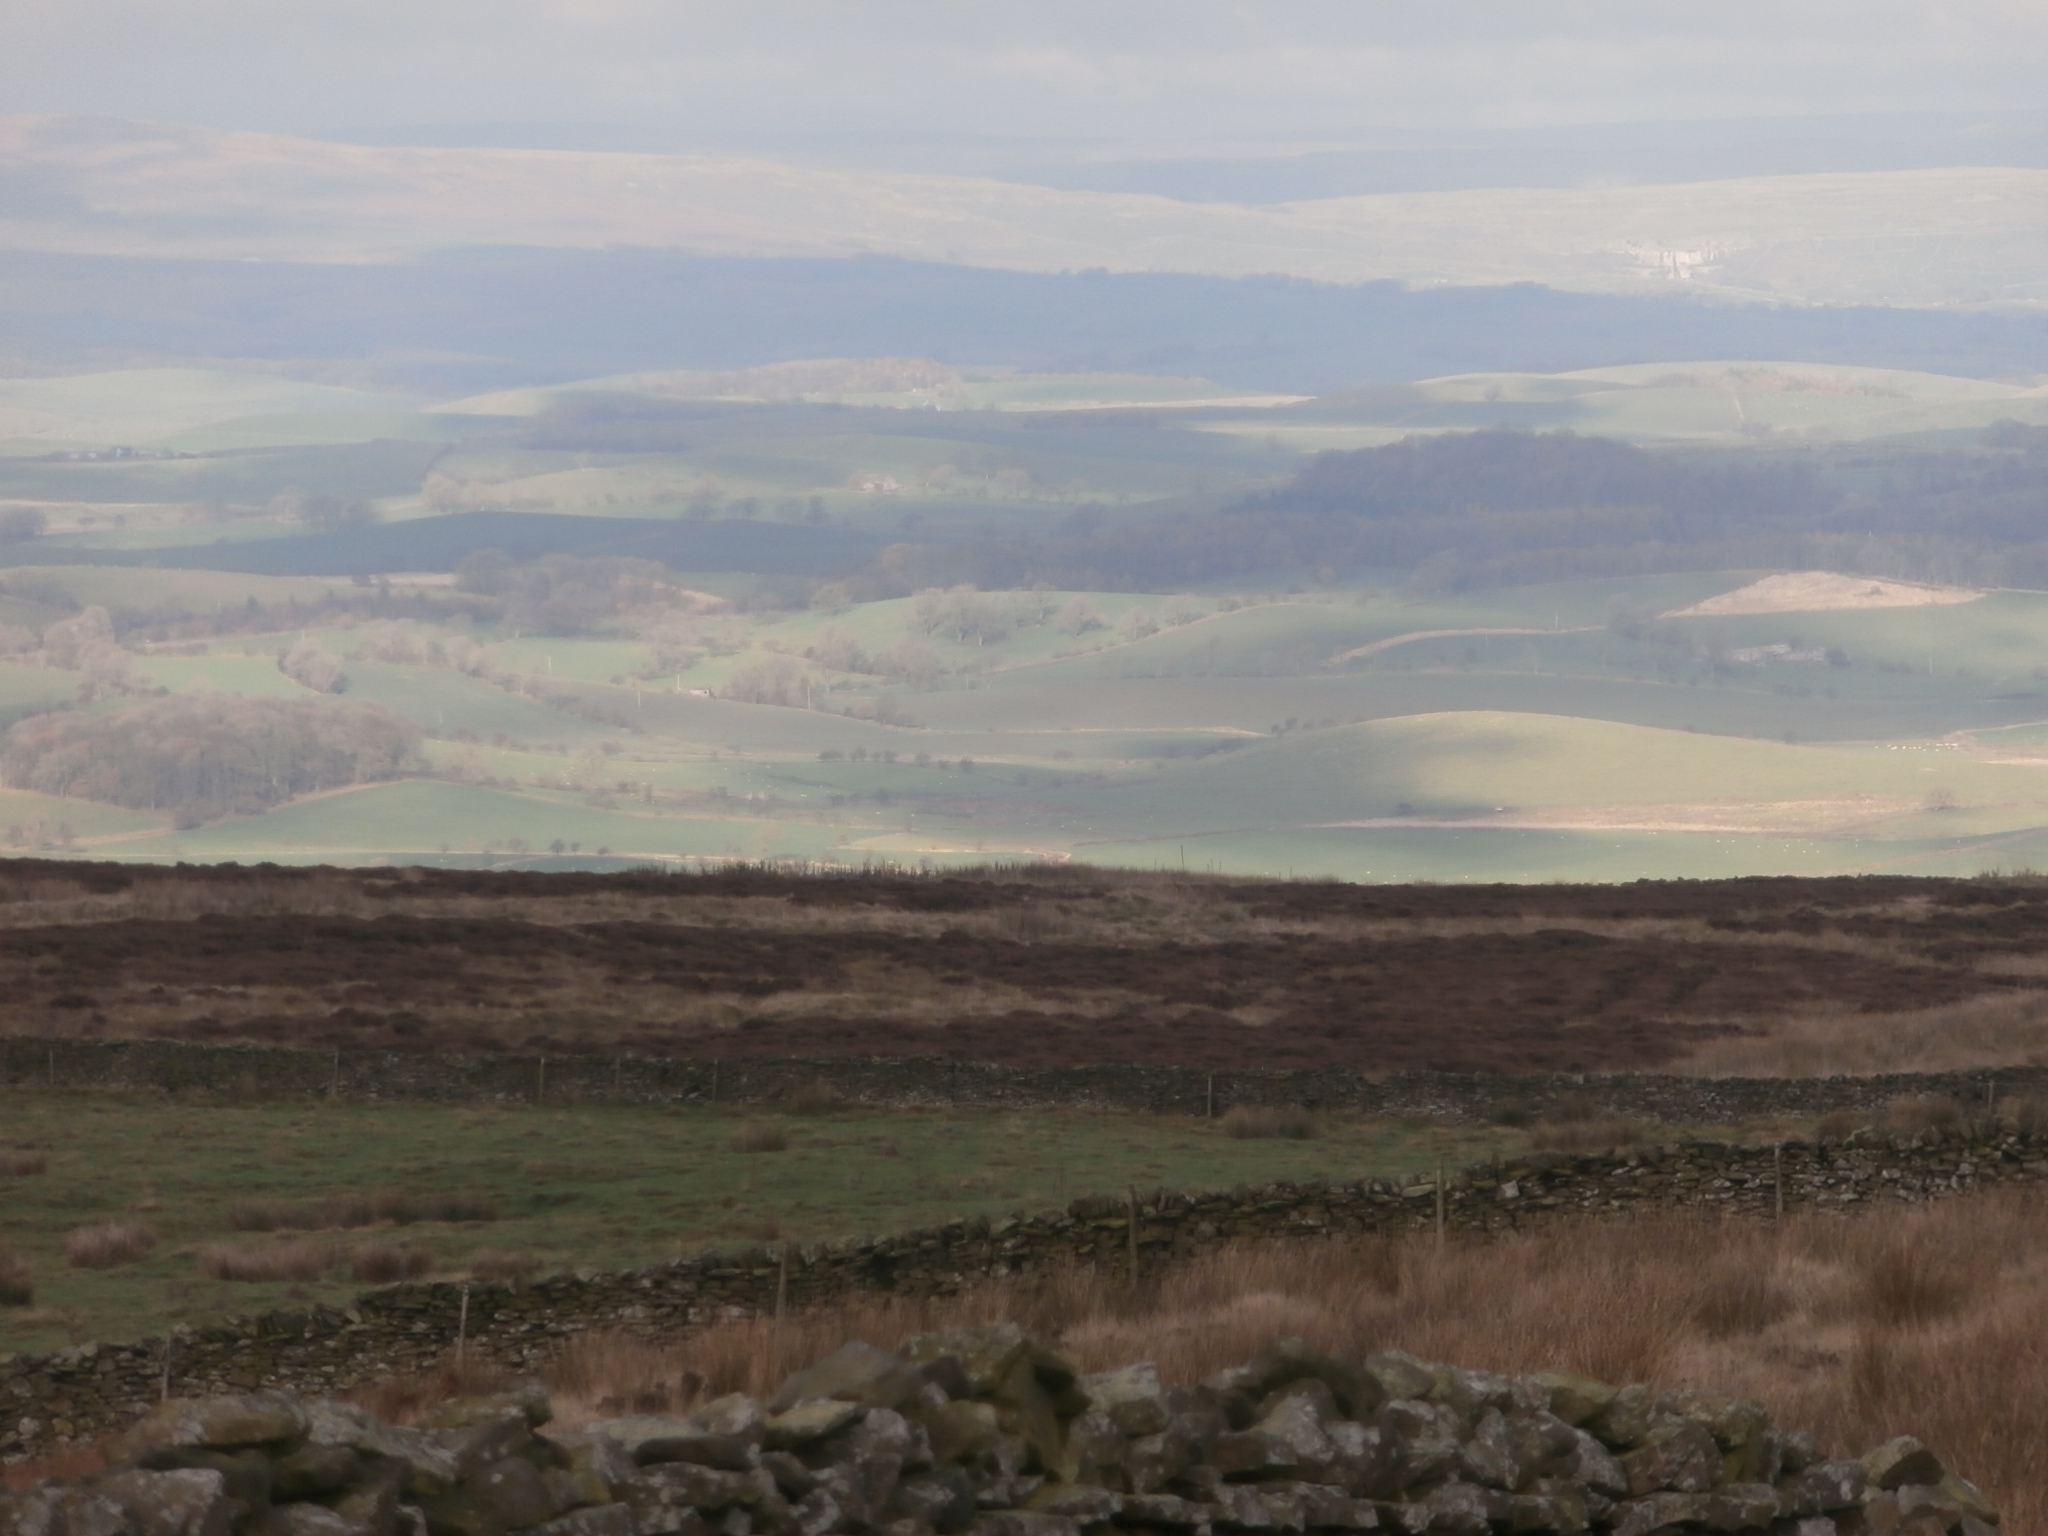 Gods own country – Yorkshire in the distance